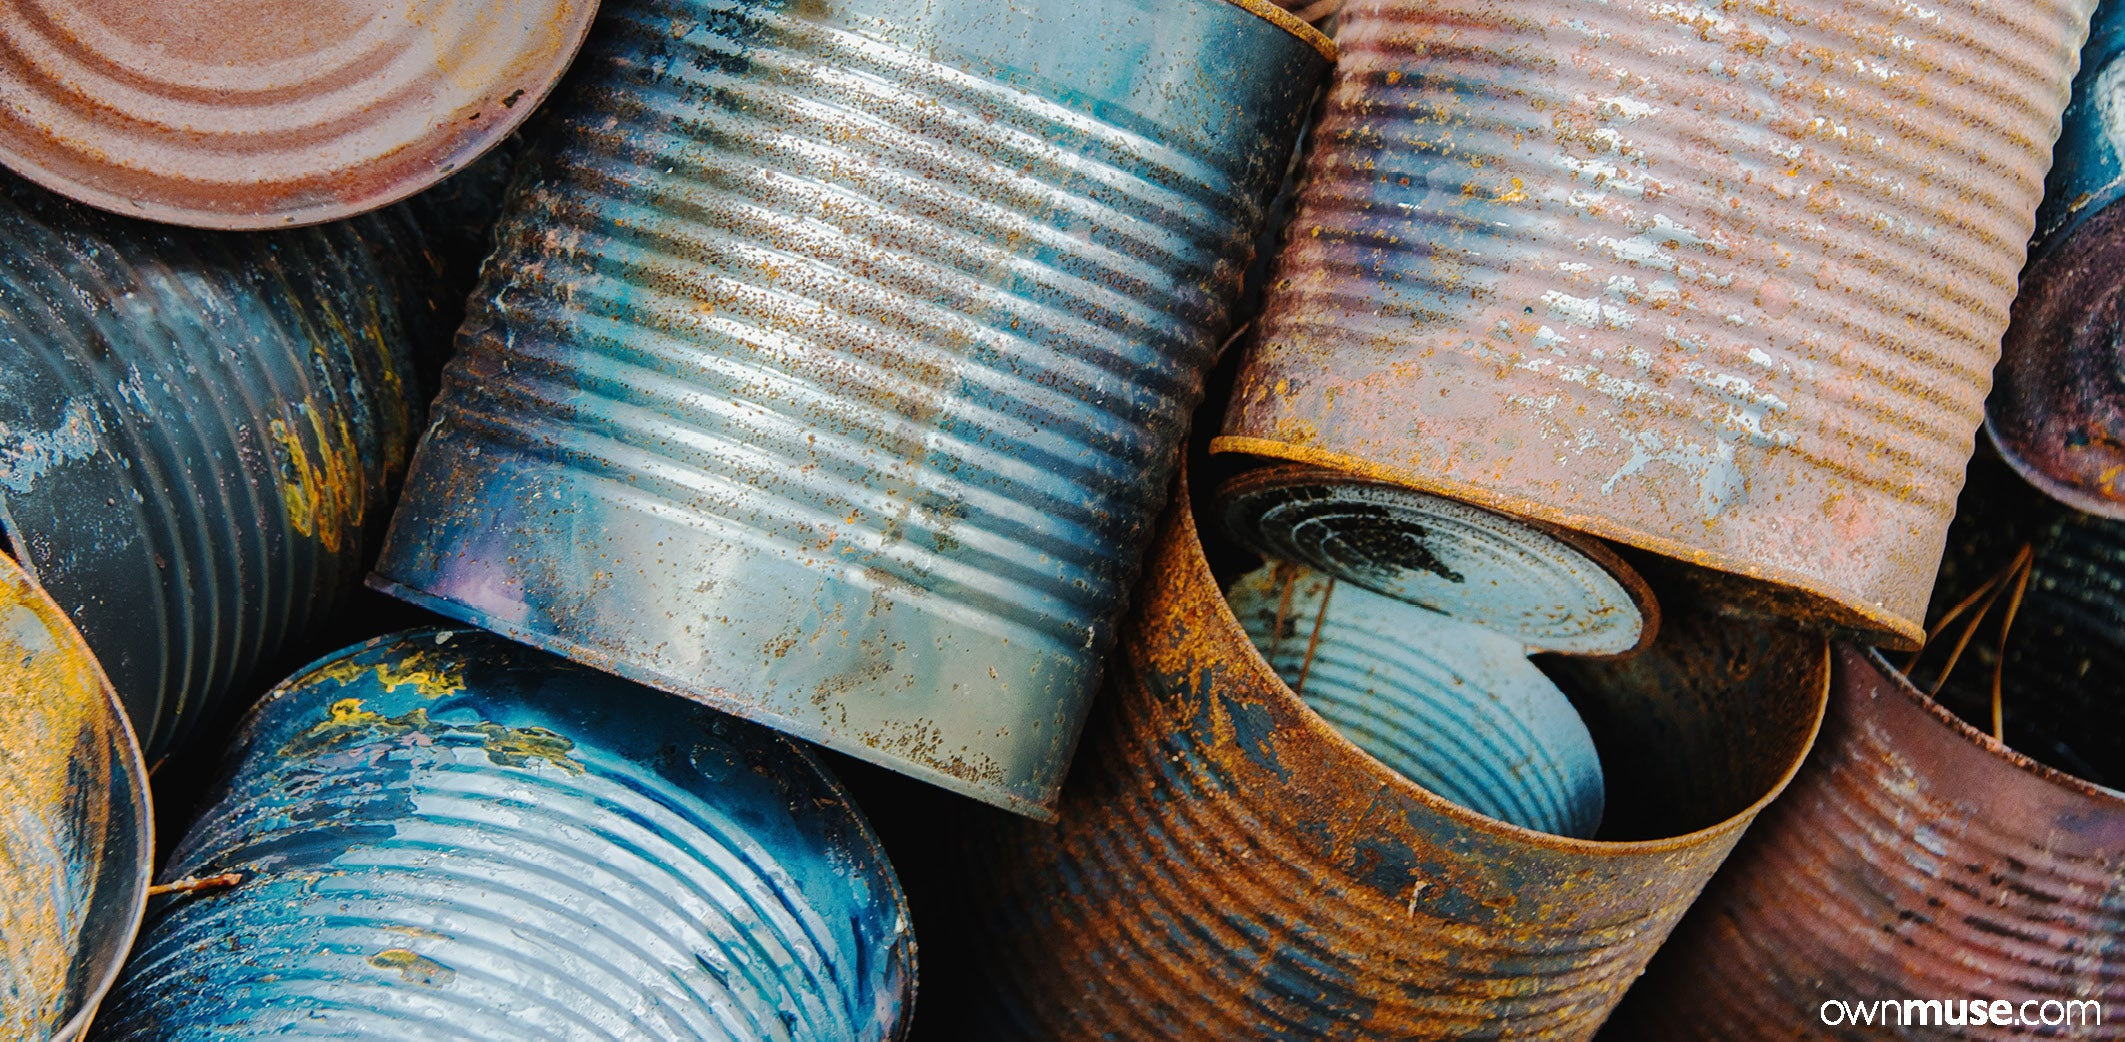 Aluminium cans and steel recycling